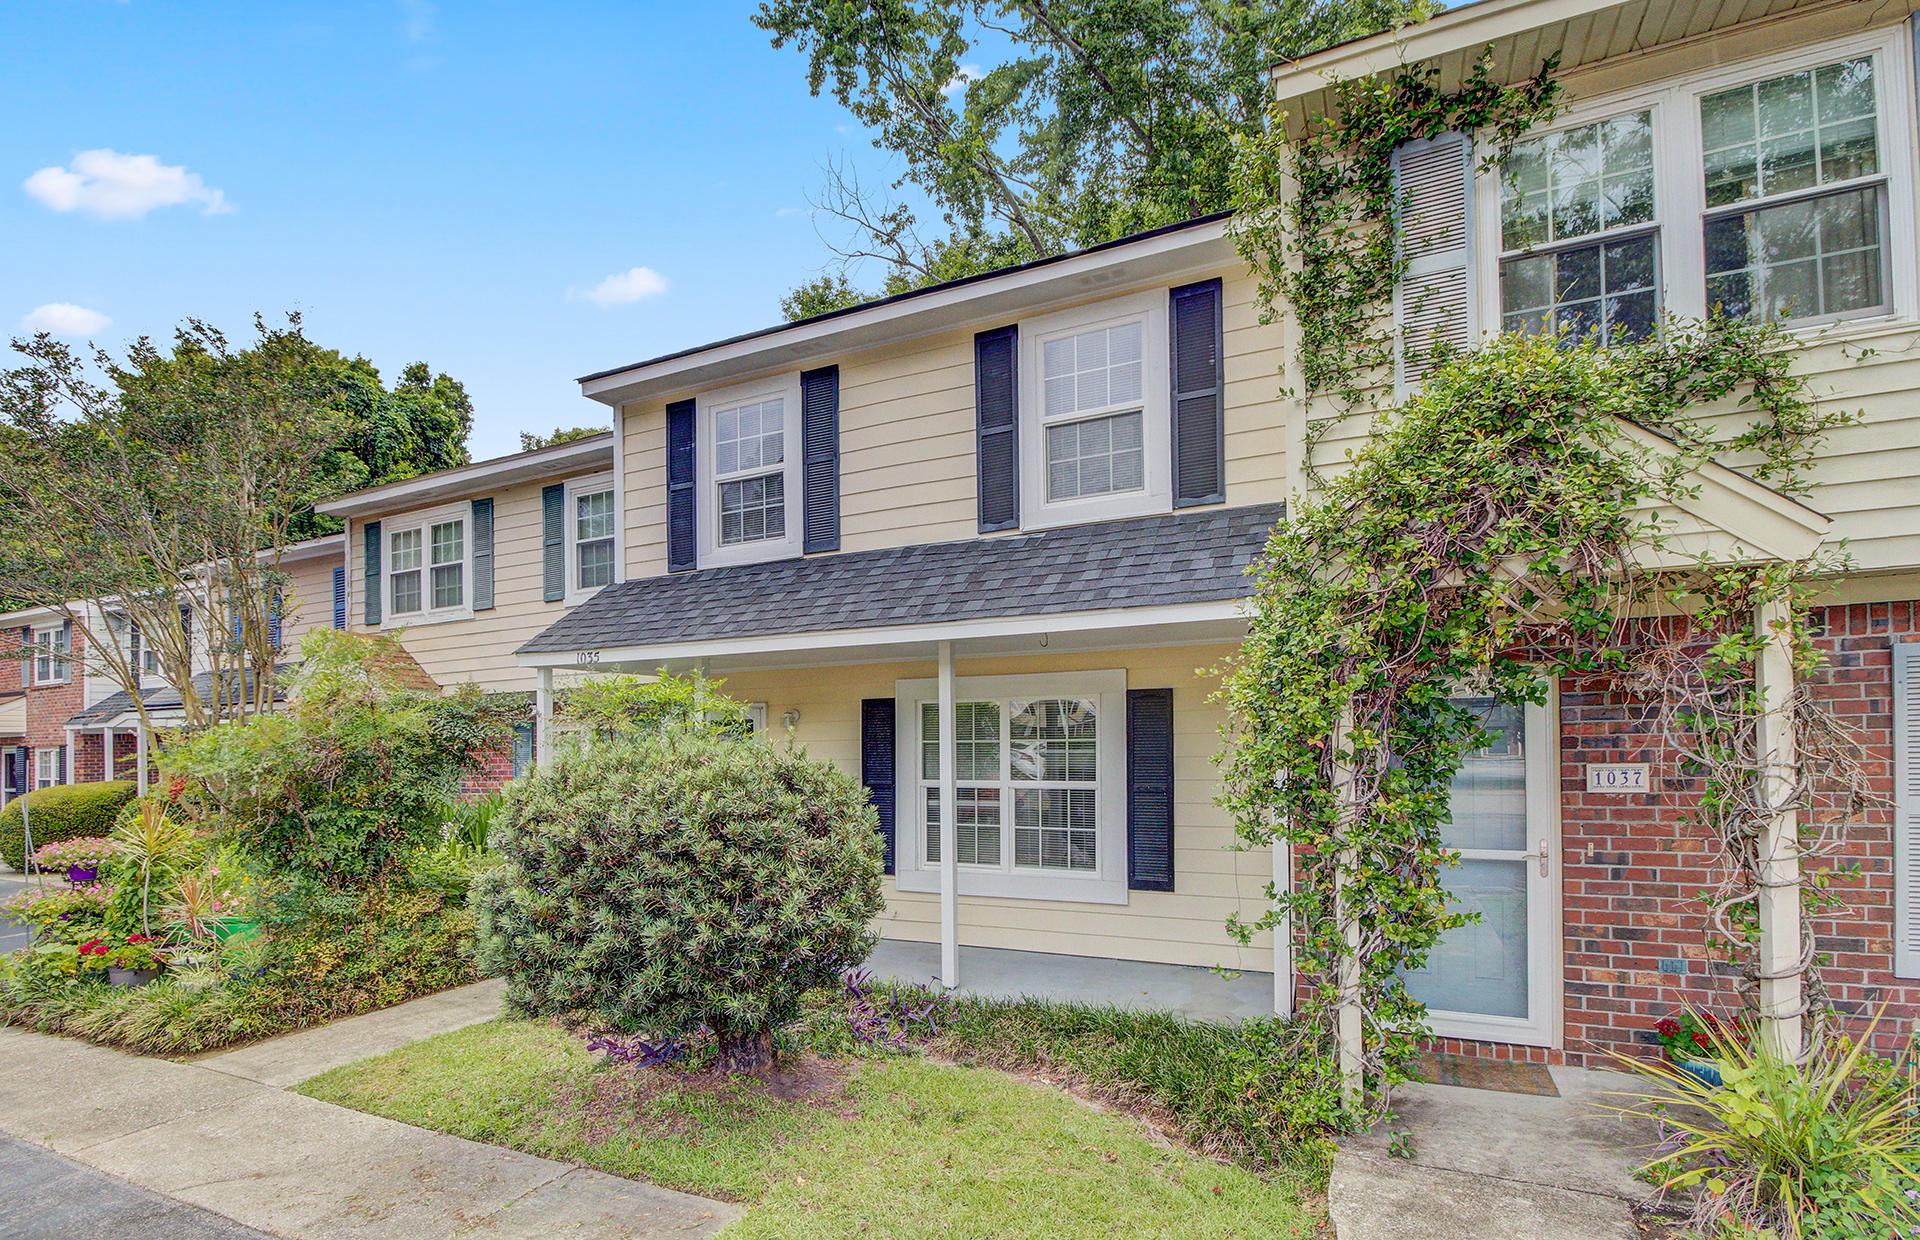 Hunters Trace Homes For Sale - 1035 Hunters, Mount Pleasant, SC - 7